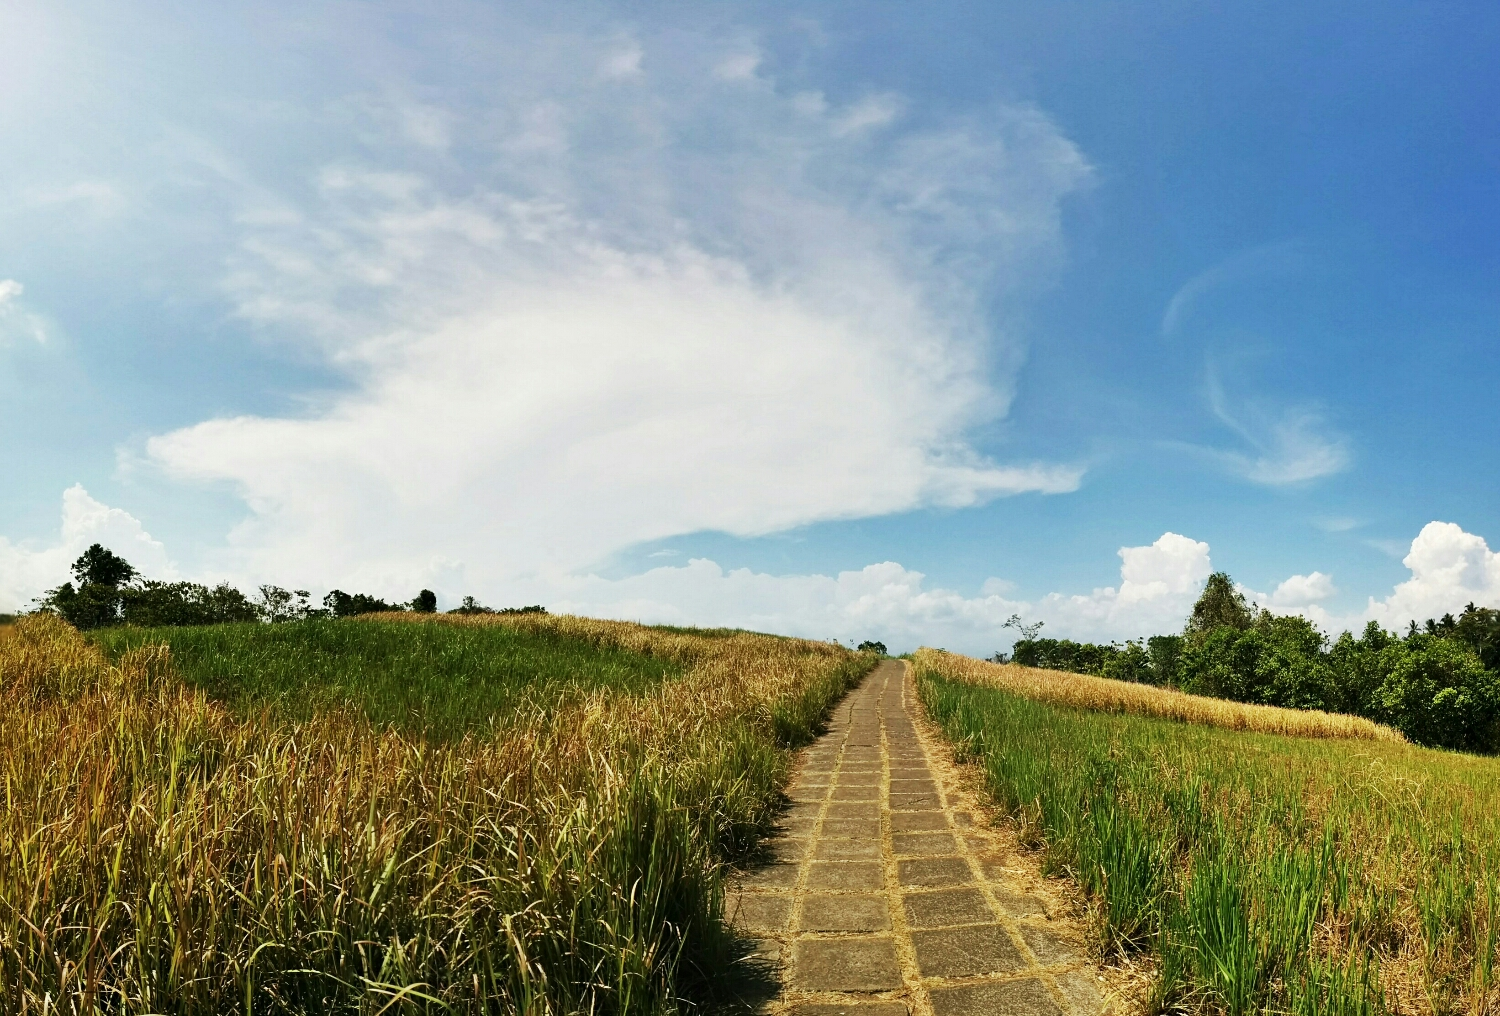 Ridge walk in Ubud, Bali. A nice walk with surprises waiting at the end of the walk.